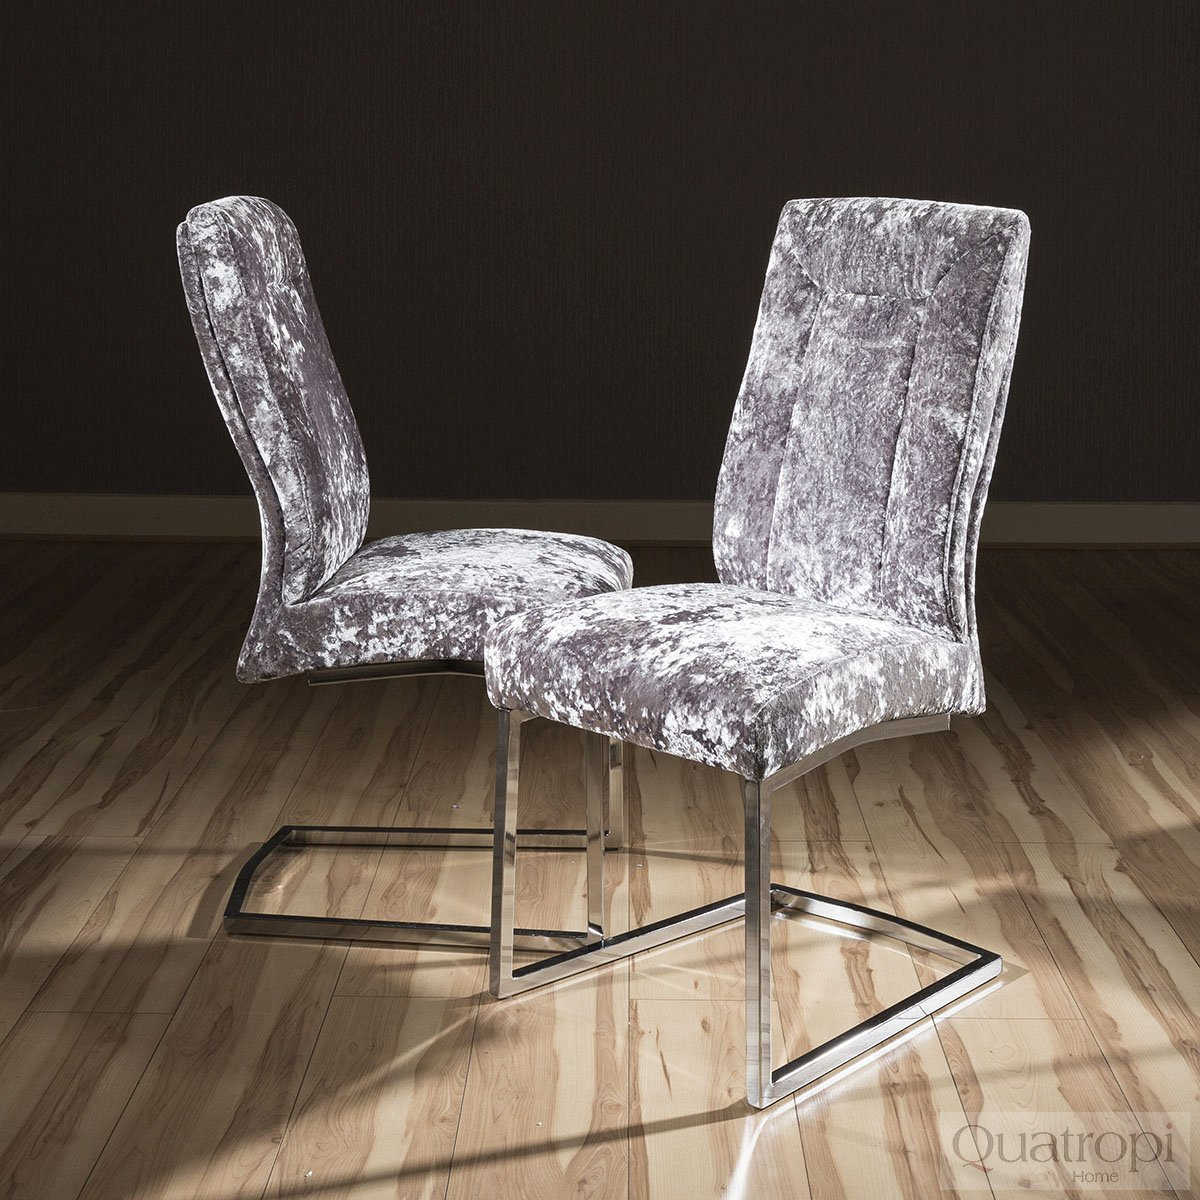 Super Comfy Chair Set Of 2 Large Super Comfy Modern Dining Chairs Silver